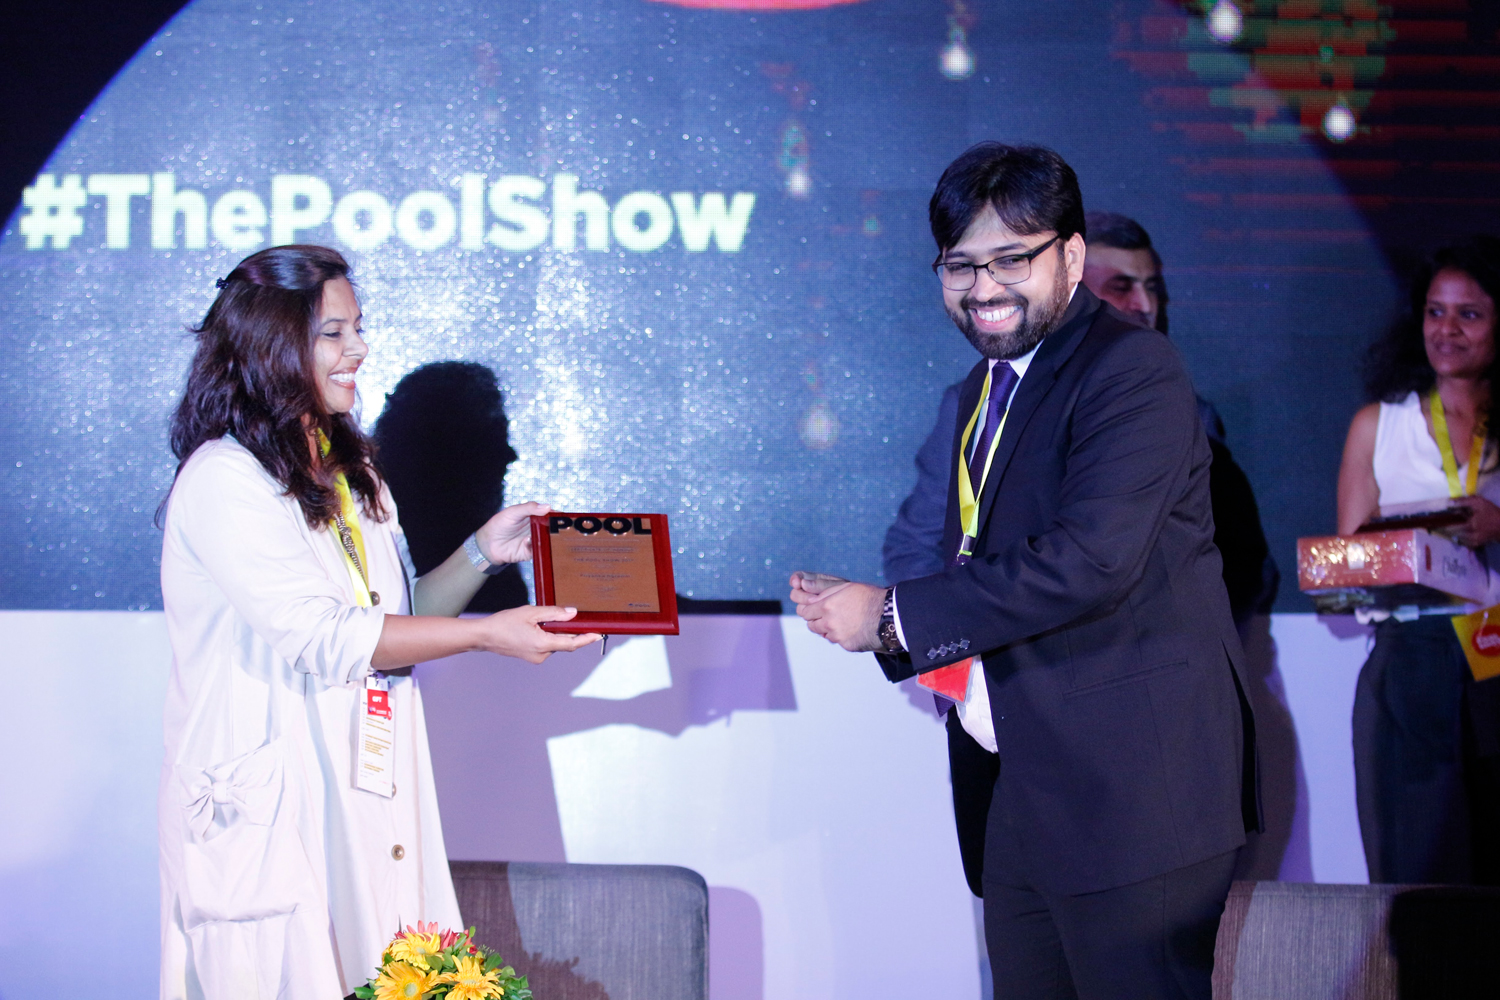 Raman Saxena, Geetha Suthar and Priyanka Agarwal, receive mementos from Tarun Thakkar, head of Marketing at POOL Magazine.